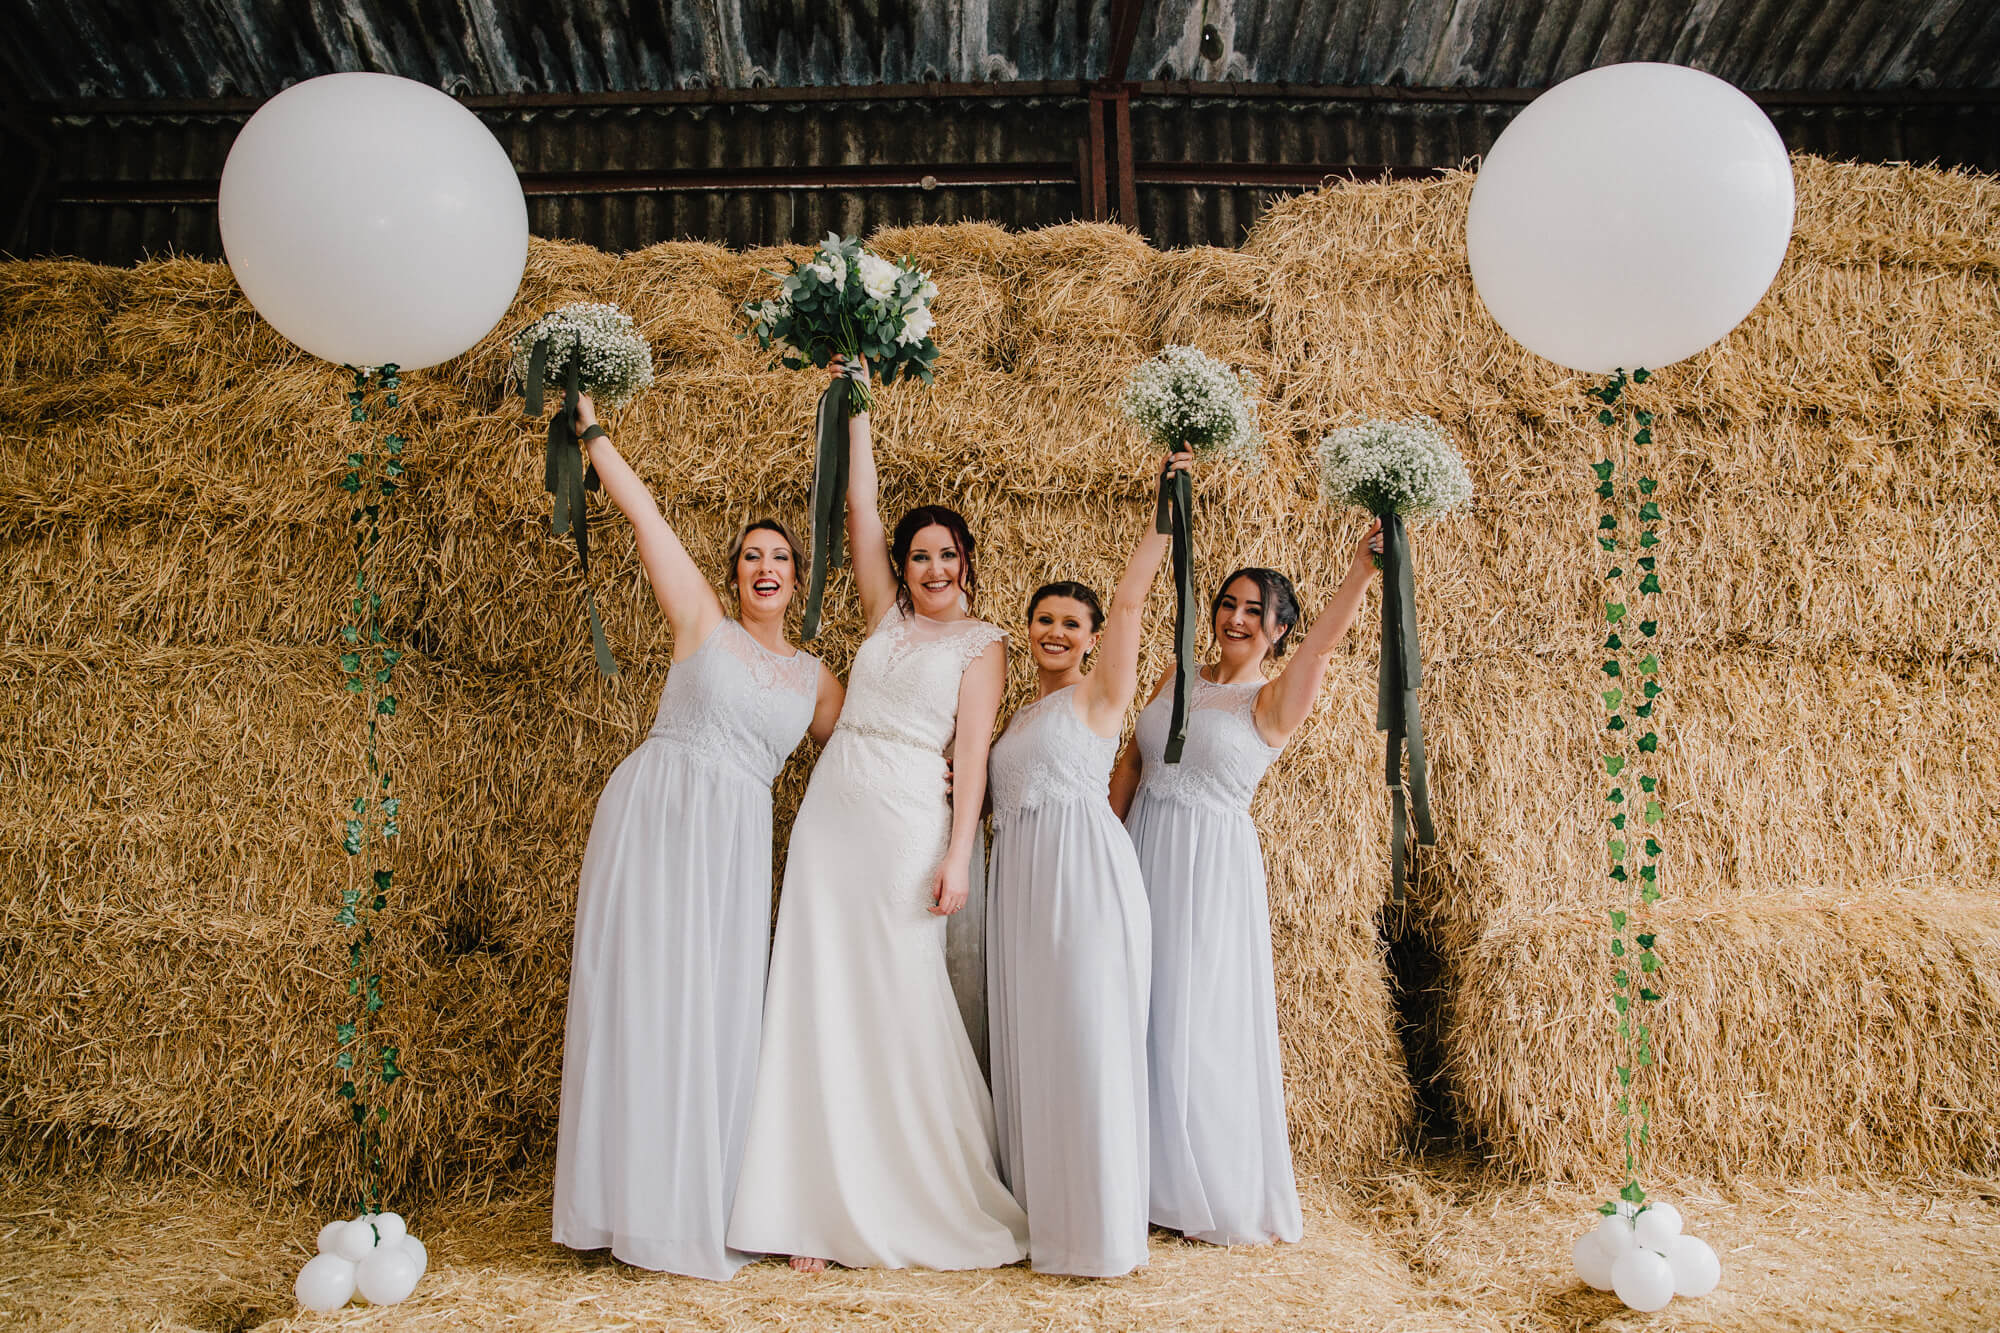 bride and bridal party hold bouquets in the air on top of hay bale backdrop for posed group photograph